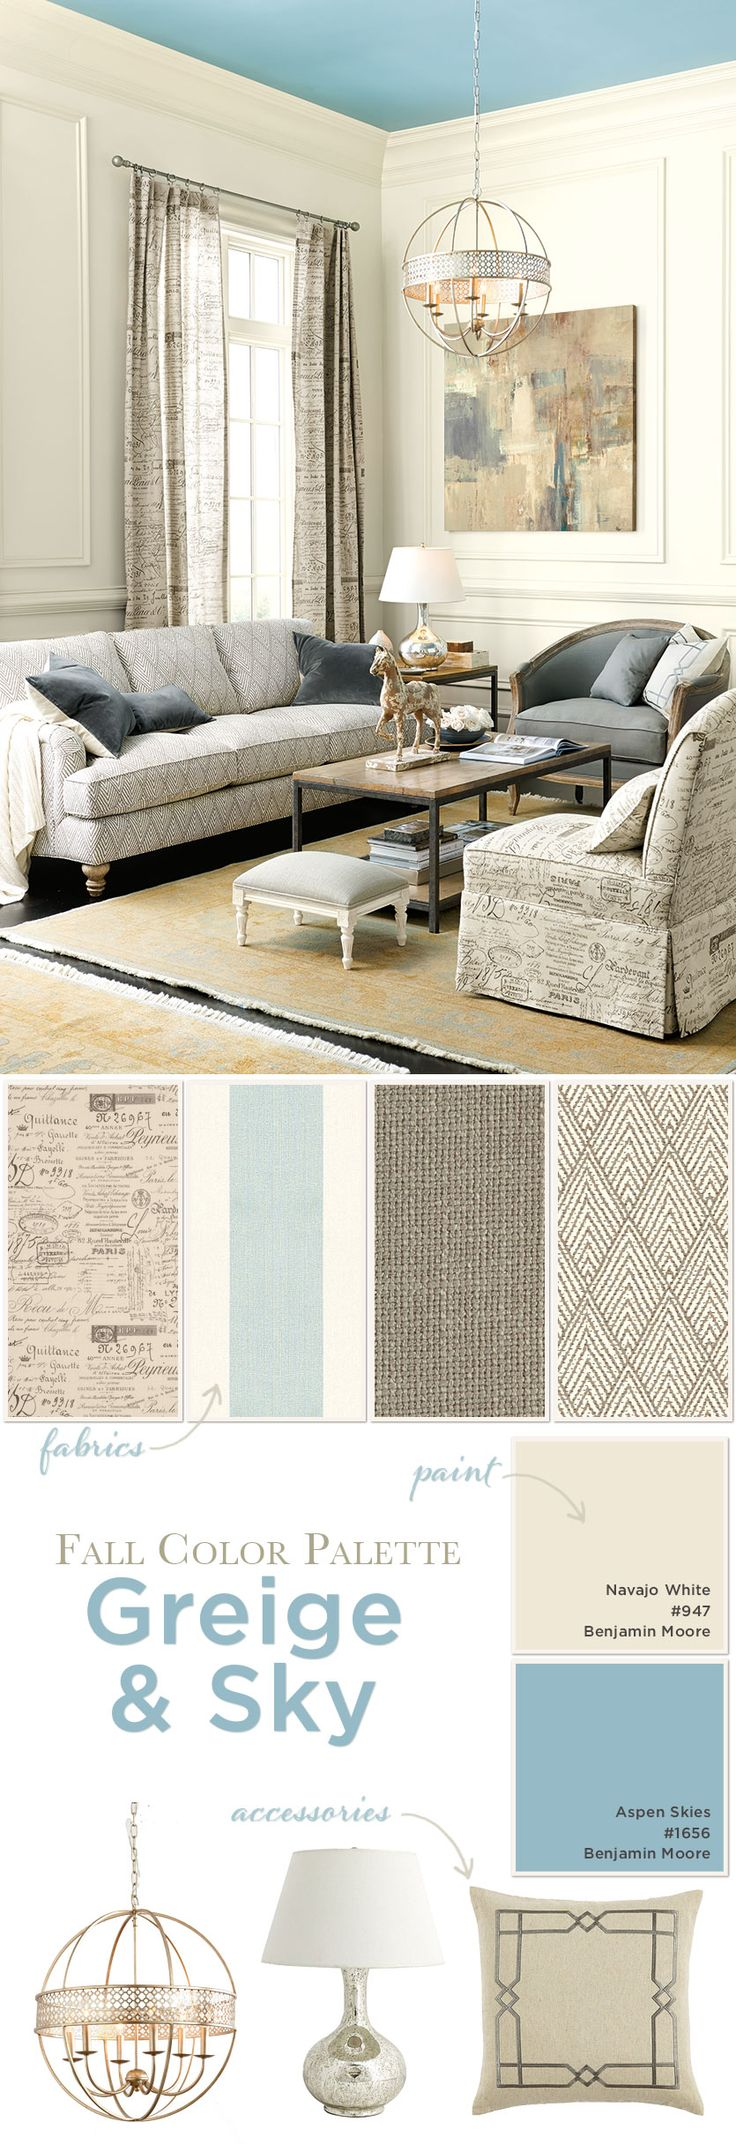 Living room color palette with gray, taupe, and blue | How to Decorate (Ballard Designs blog)